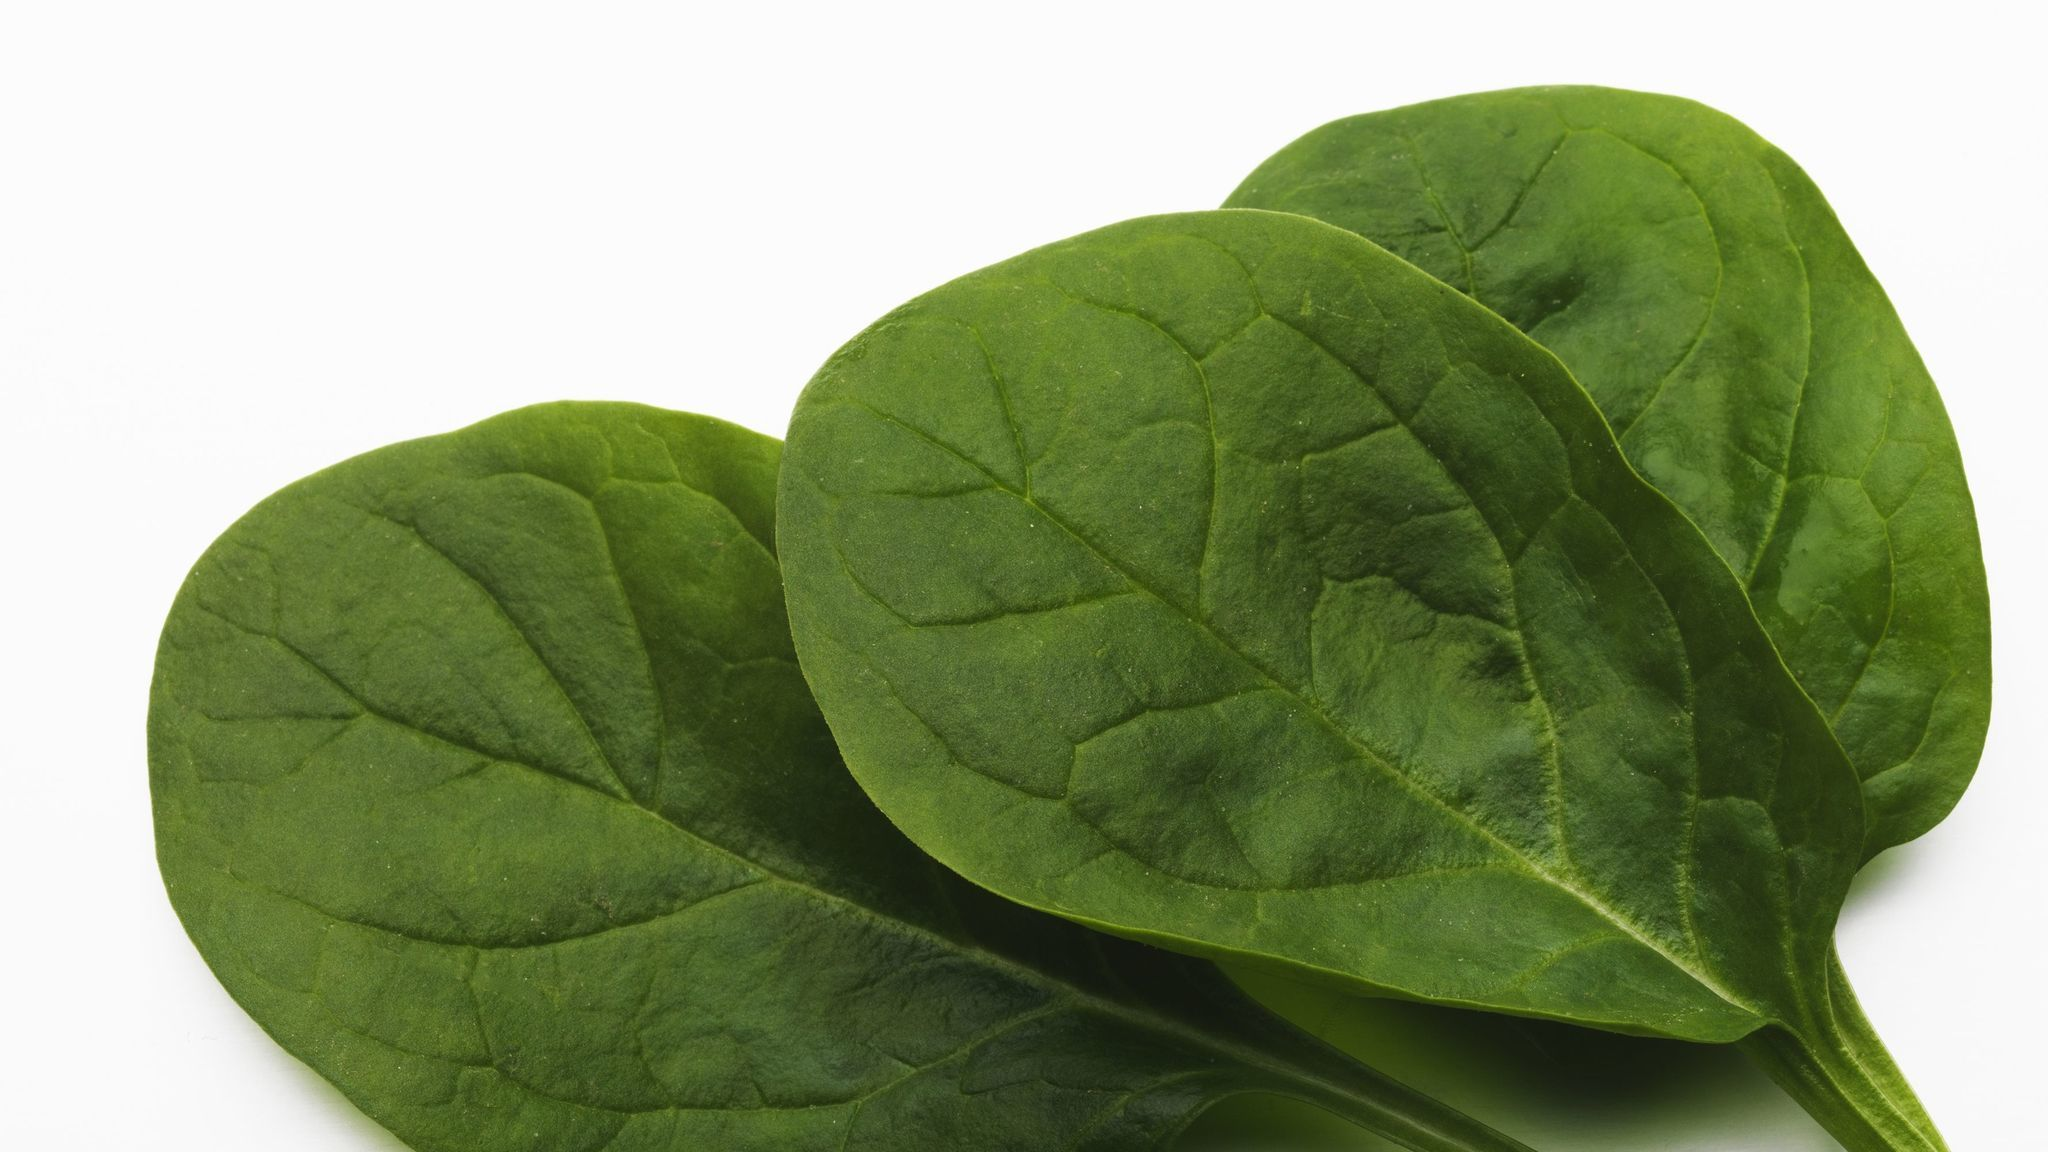 Eating spinach will help you get your recommended amount of magnesium.